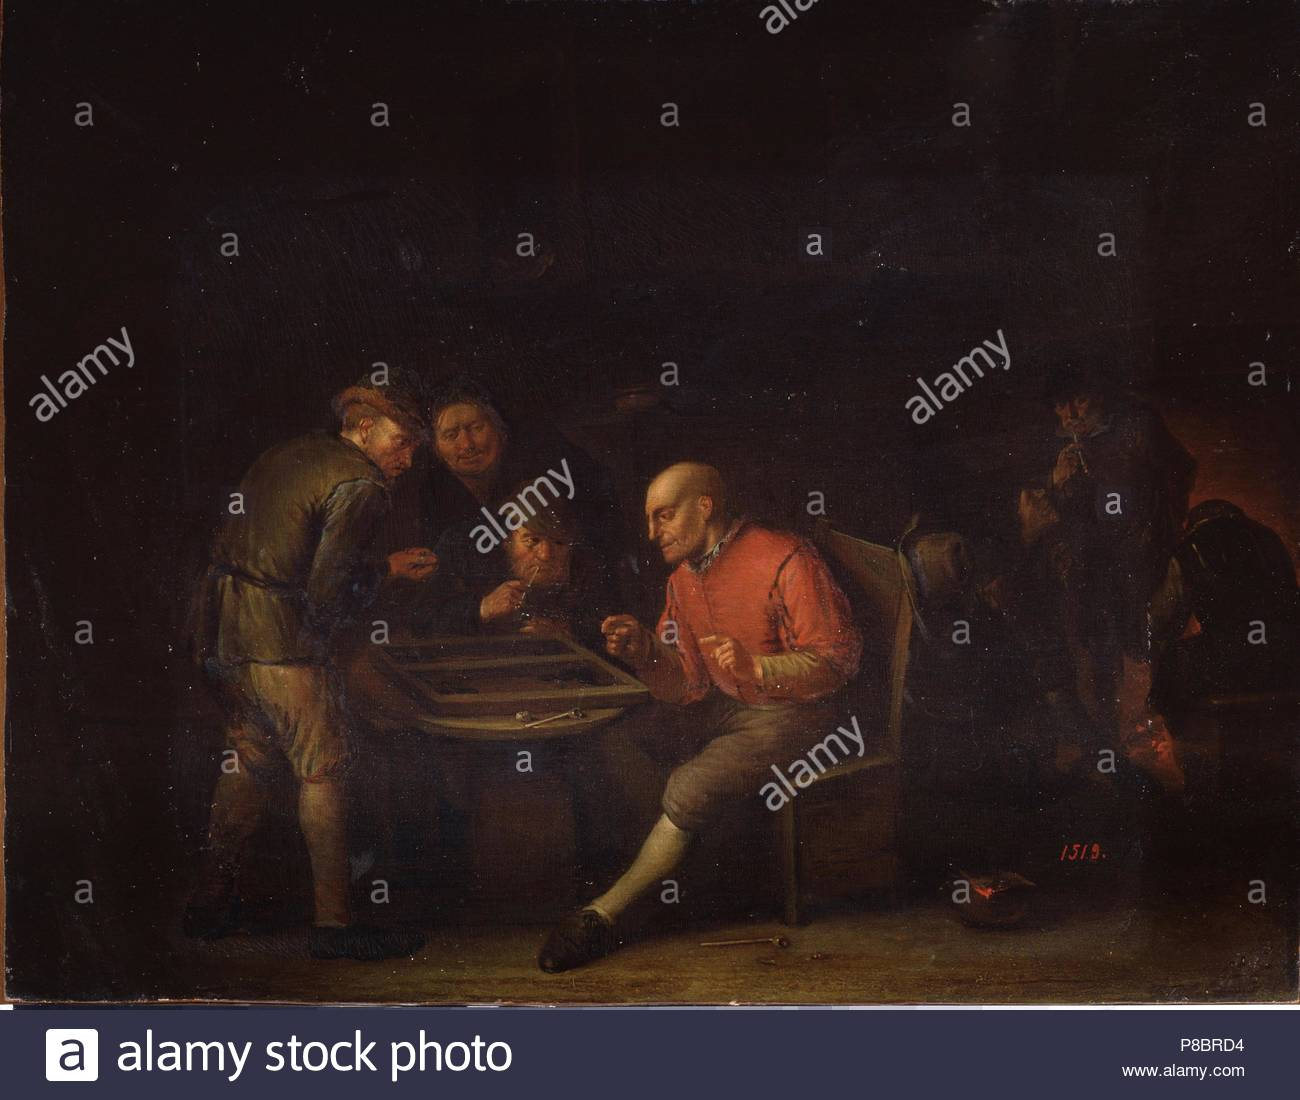 Flemings Playing Dice. Museum: State Open-air Museum Palace Gatchina, St. Petersburg. - Stock Image